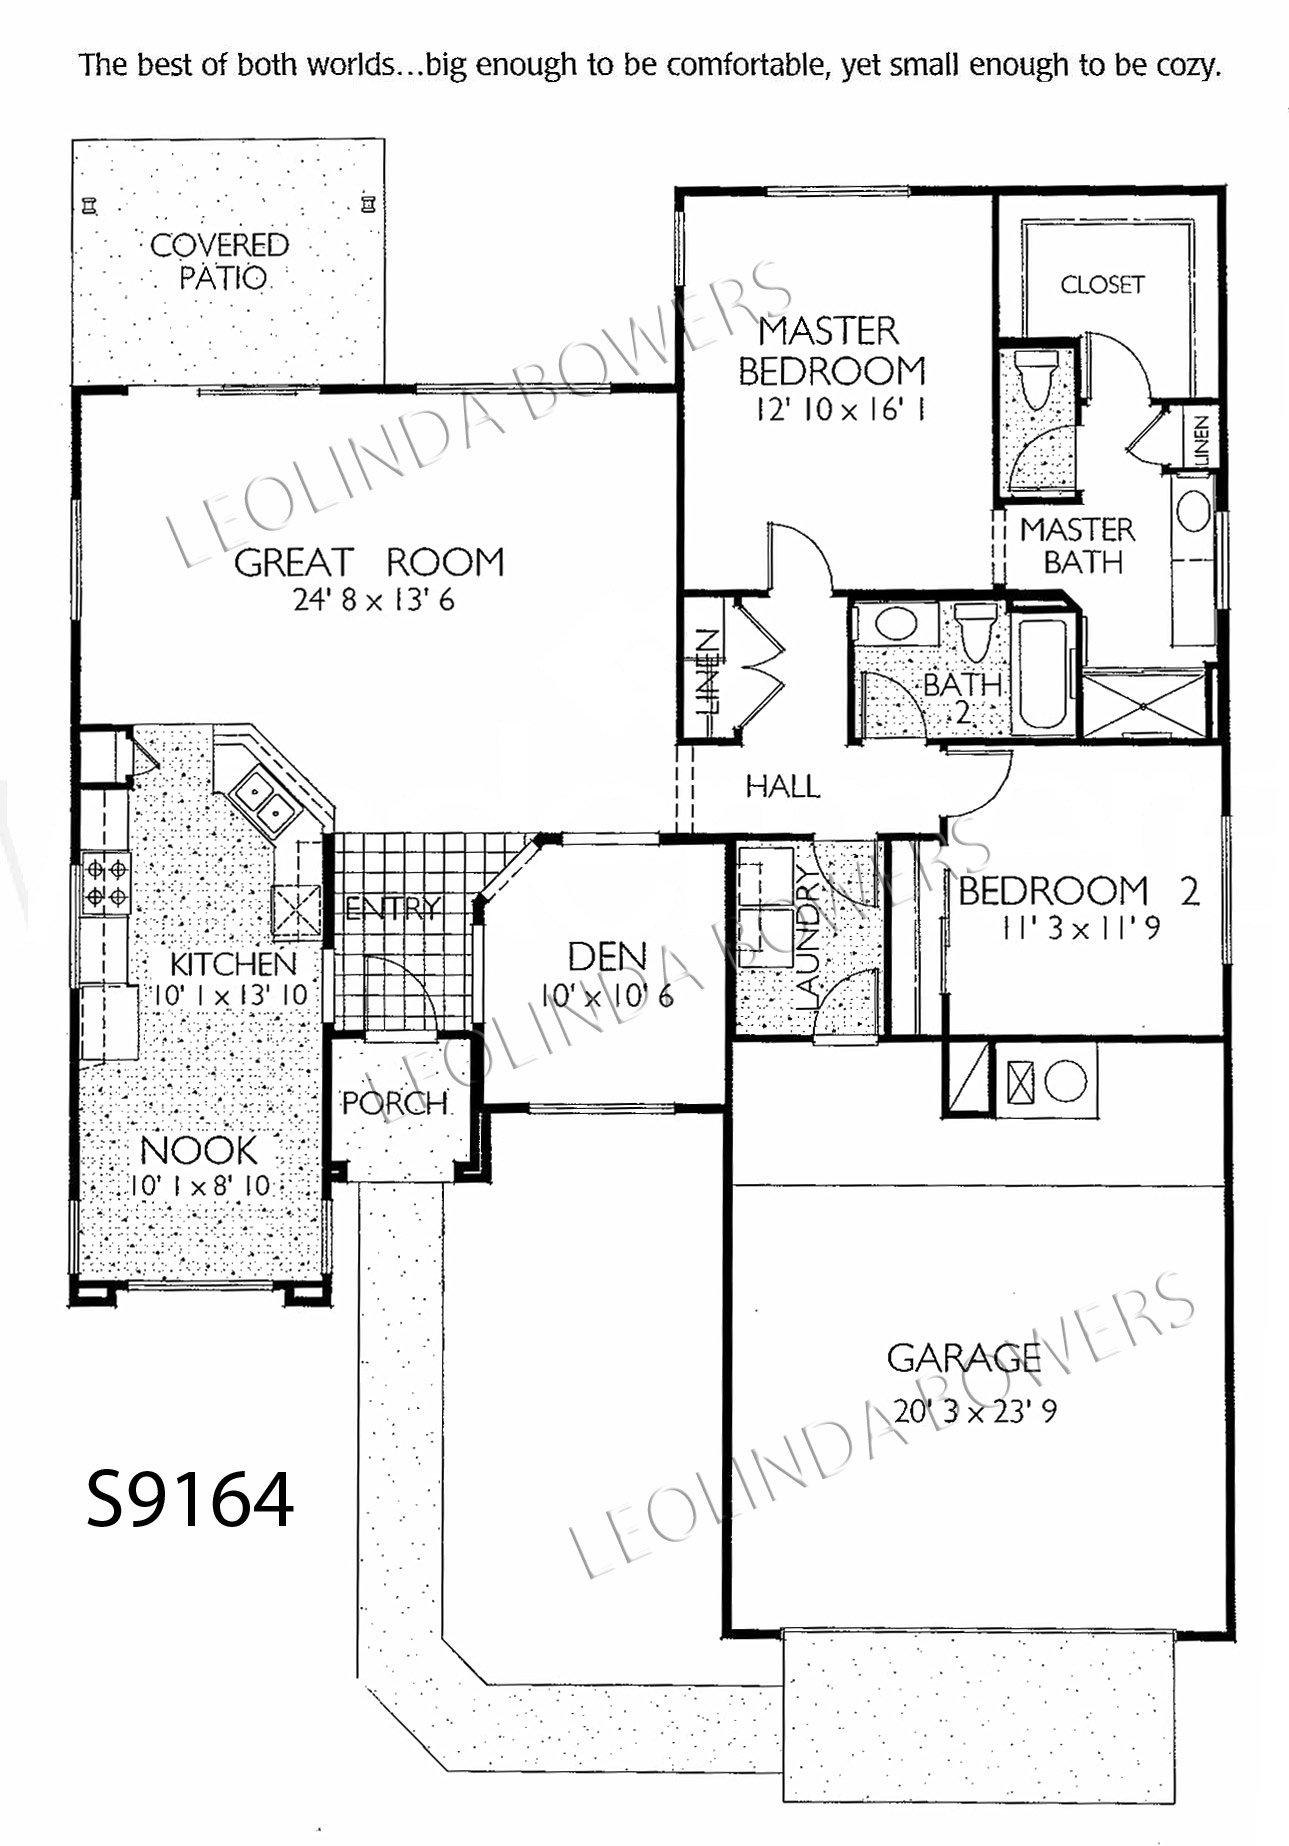 Sun City Grand Madera model floor plan